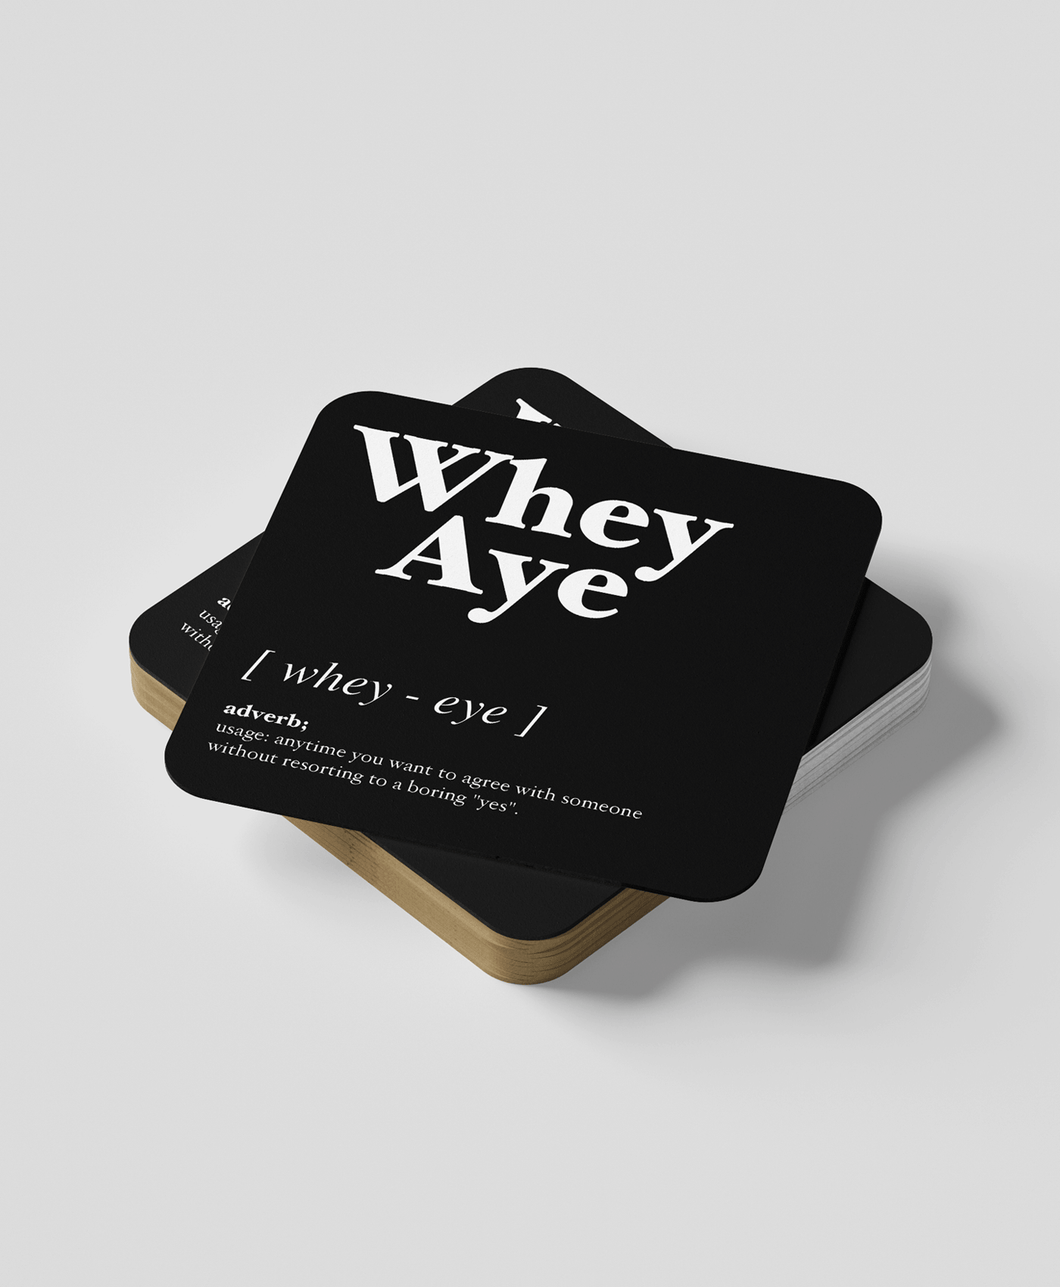 Whey Aye - Geordie Dialect Coaster (Black)